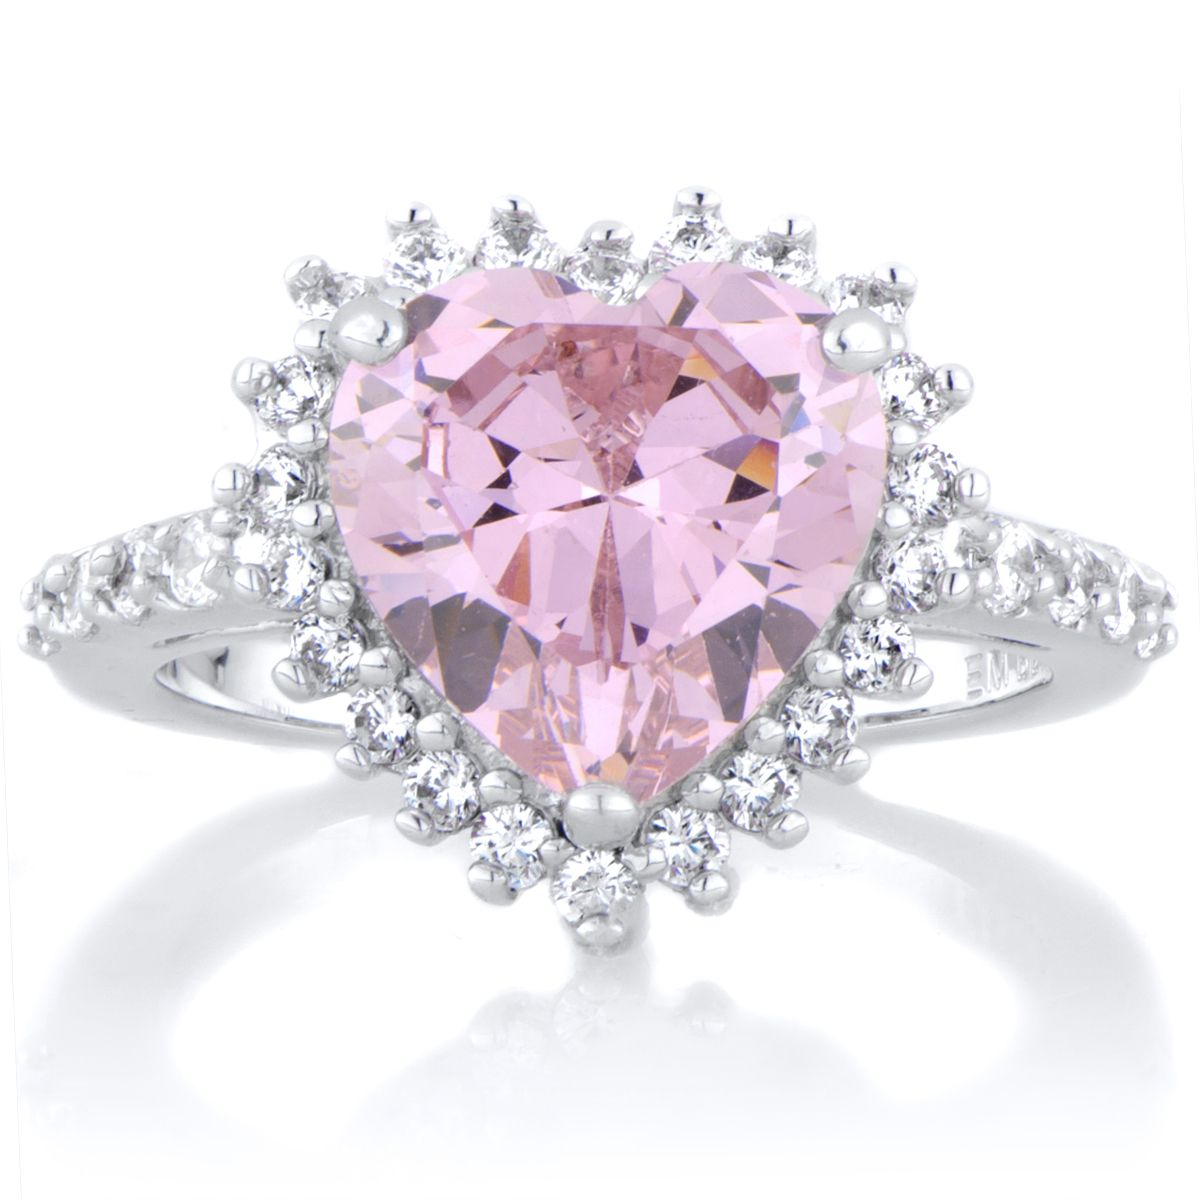 gemstone heart topaz ring gold cluster wedding image large pink jewellery diamond white rings